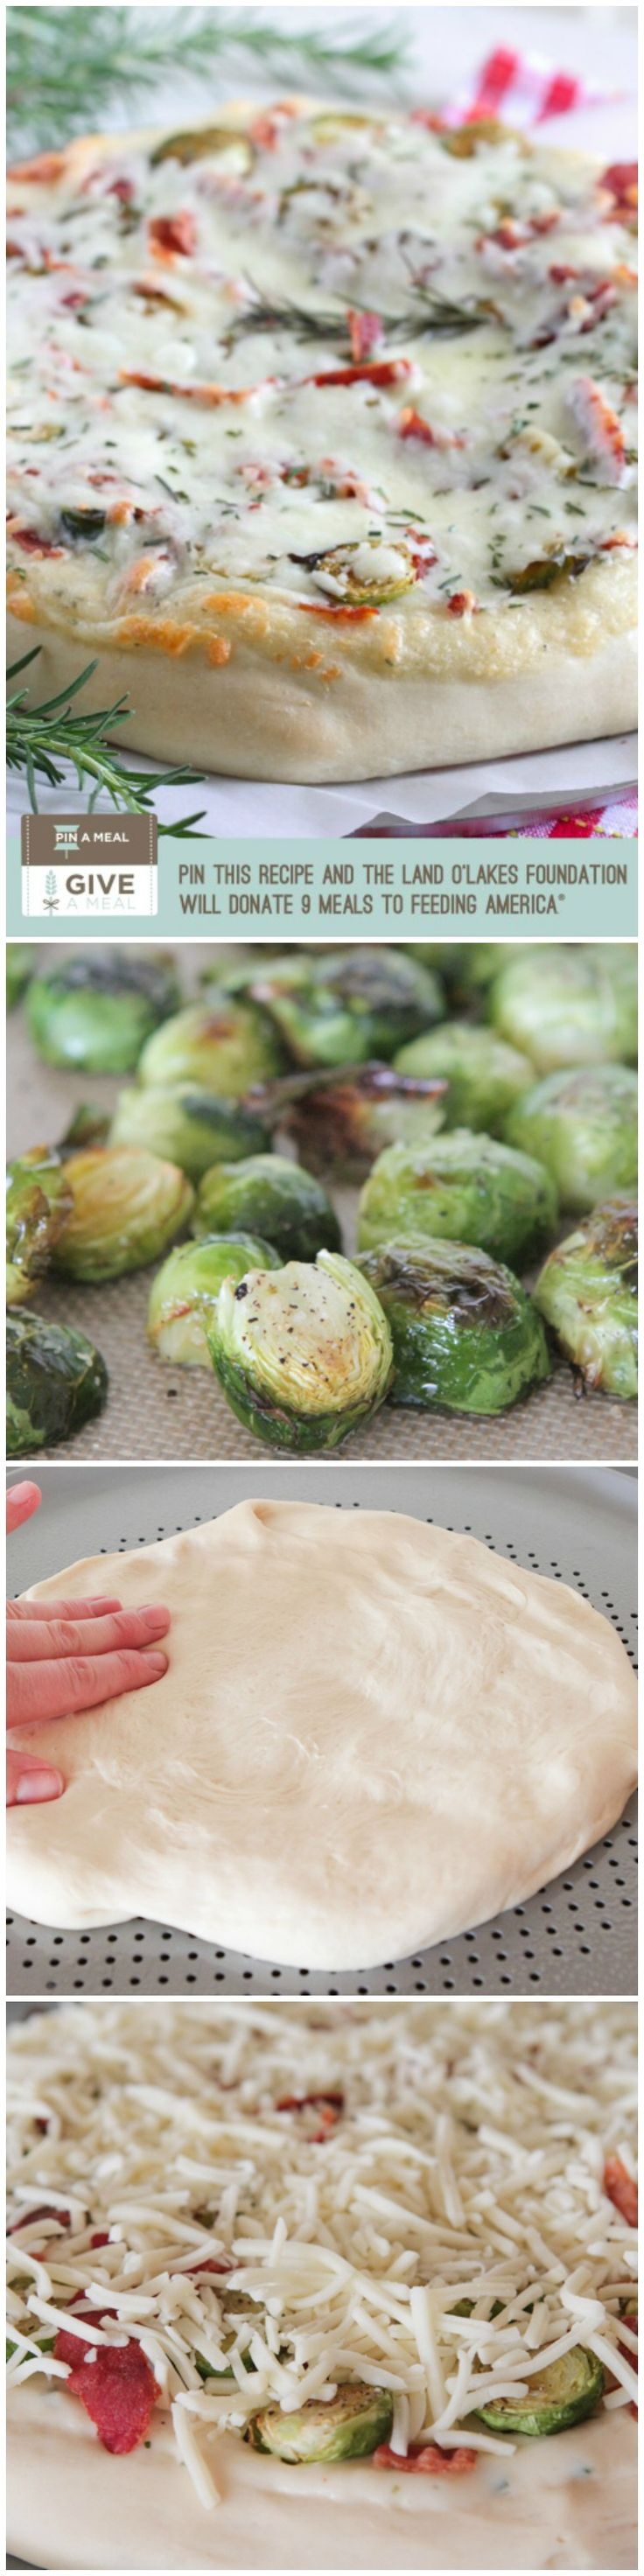 Parmesan Rosemary Brussels Sprouts and Bacon Pizza!  Re-Pin and 9 meals will be donated to Feeding America-May 31, 2014 #giveameal